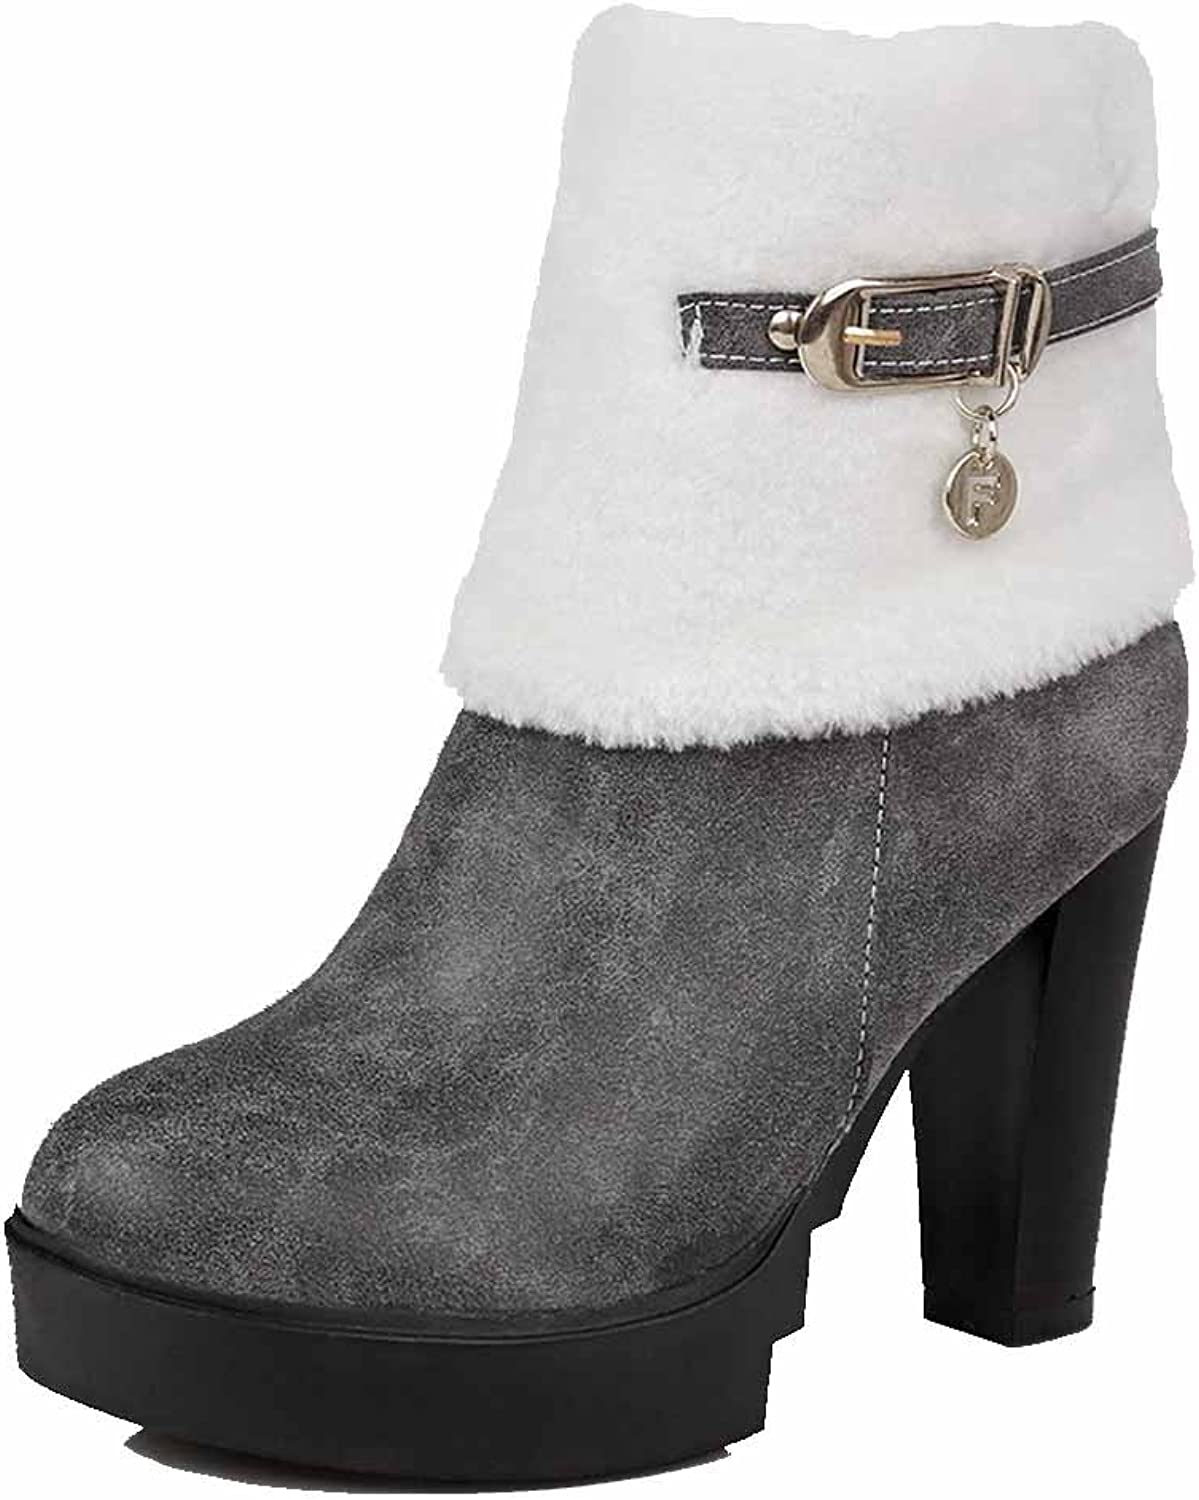 AllhqFashion Women's High-Heels Soft Material Low-top Solid Chains Boots